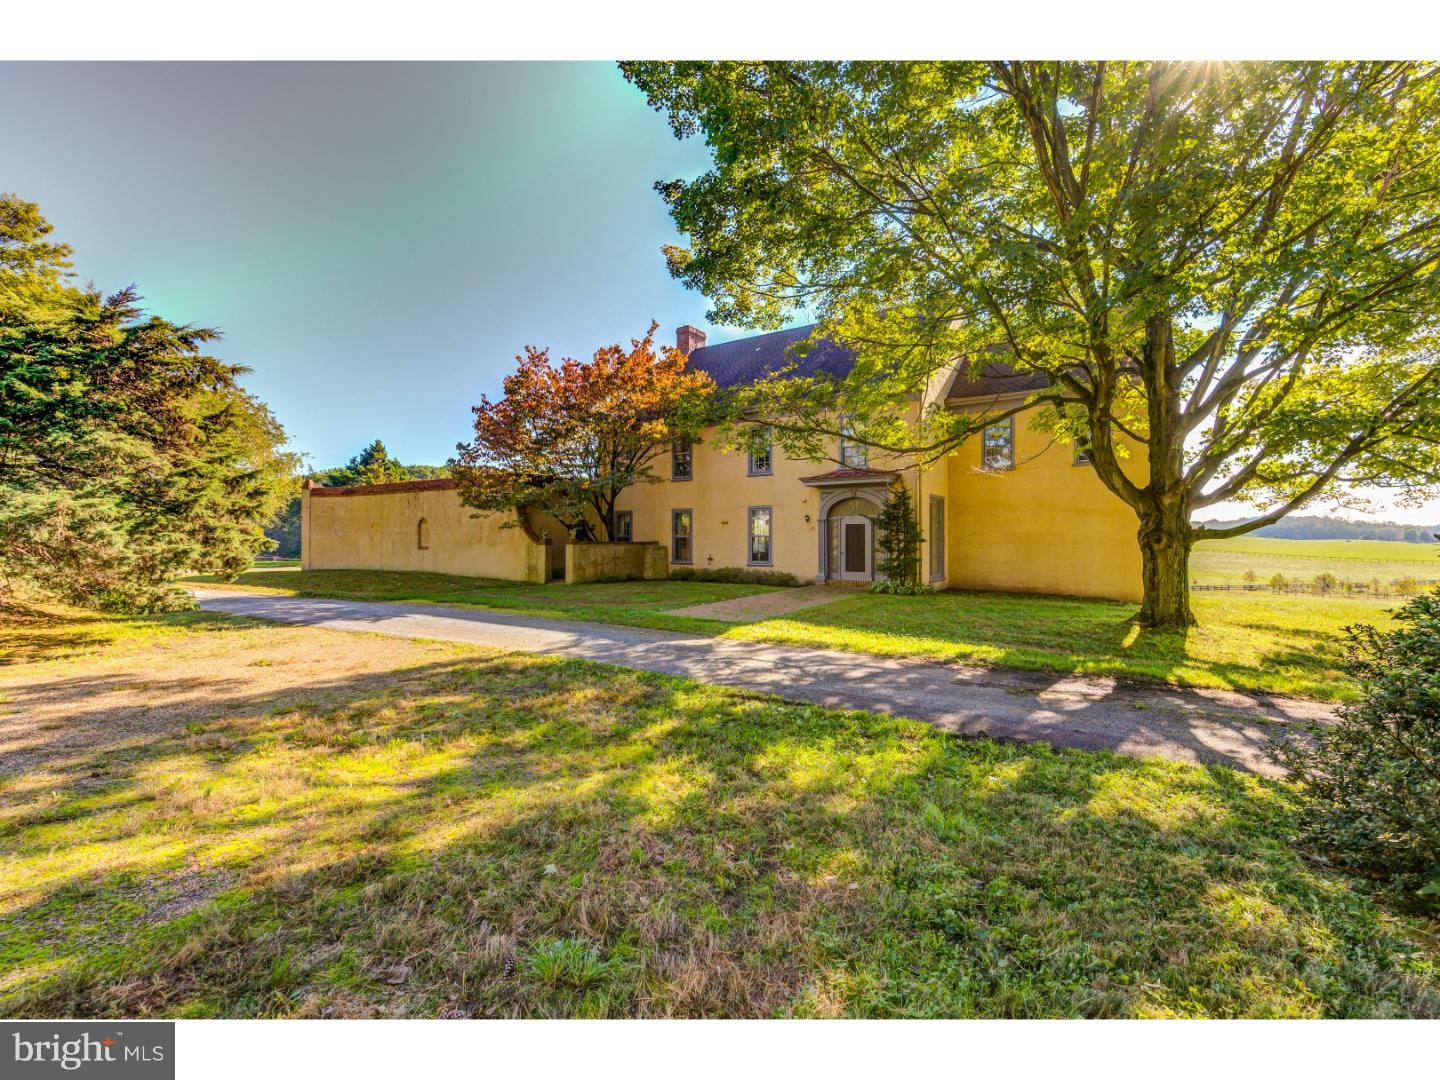 580 Upland Rd Kennett Square, PA 19348